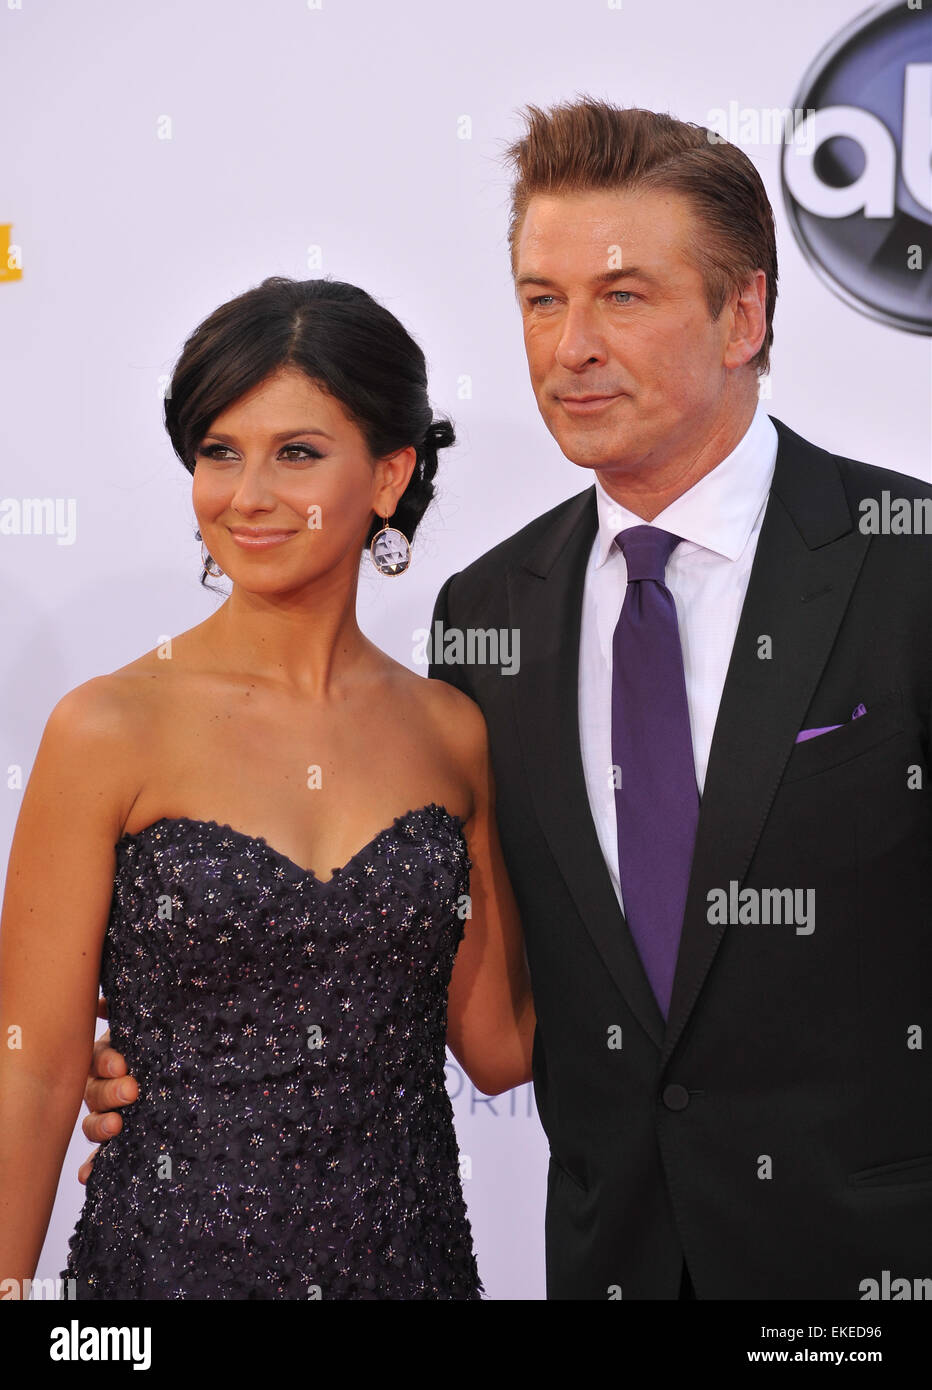 LOS ANGELES, CA - SEPTEMBER 23, 2012: Alec Baldwin & wife Hilaria Thomas at the 64th Primetime Emmy Awards at the Stock Photo